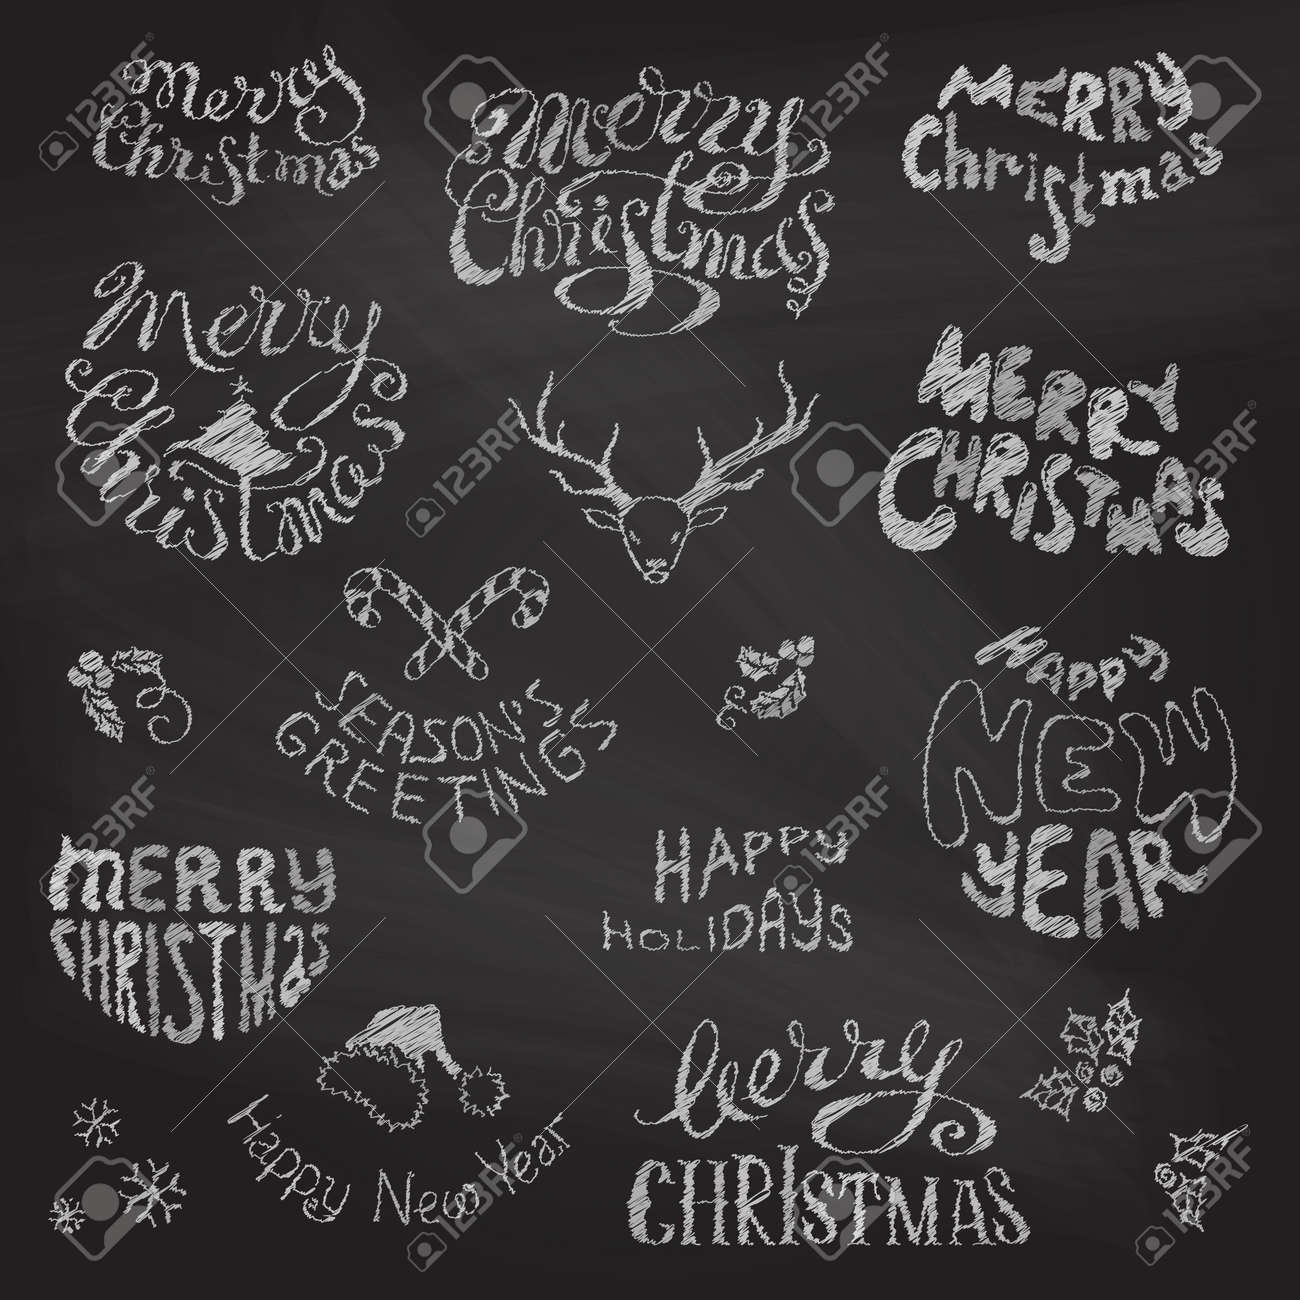 merry christmas and happy new year lettering chalk hand drawn